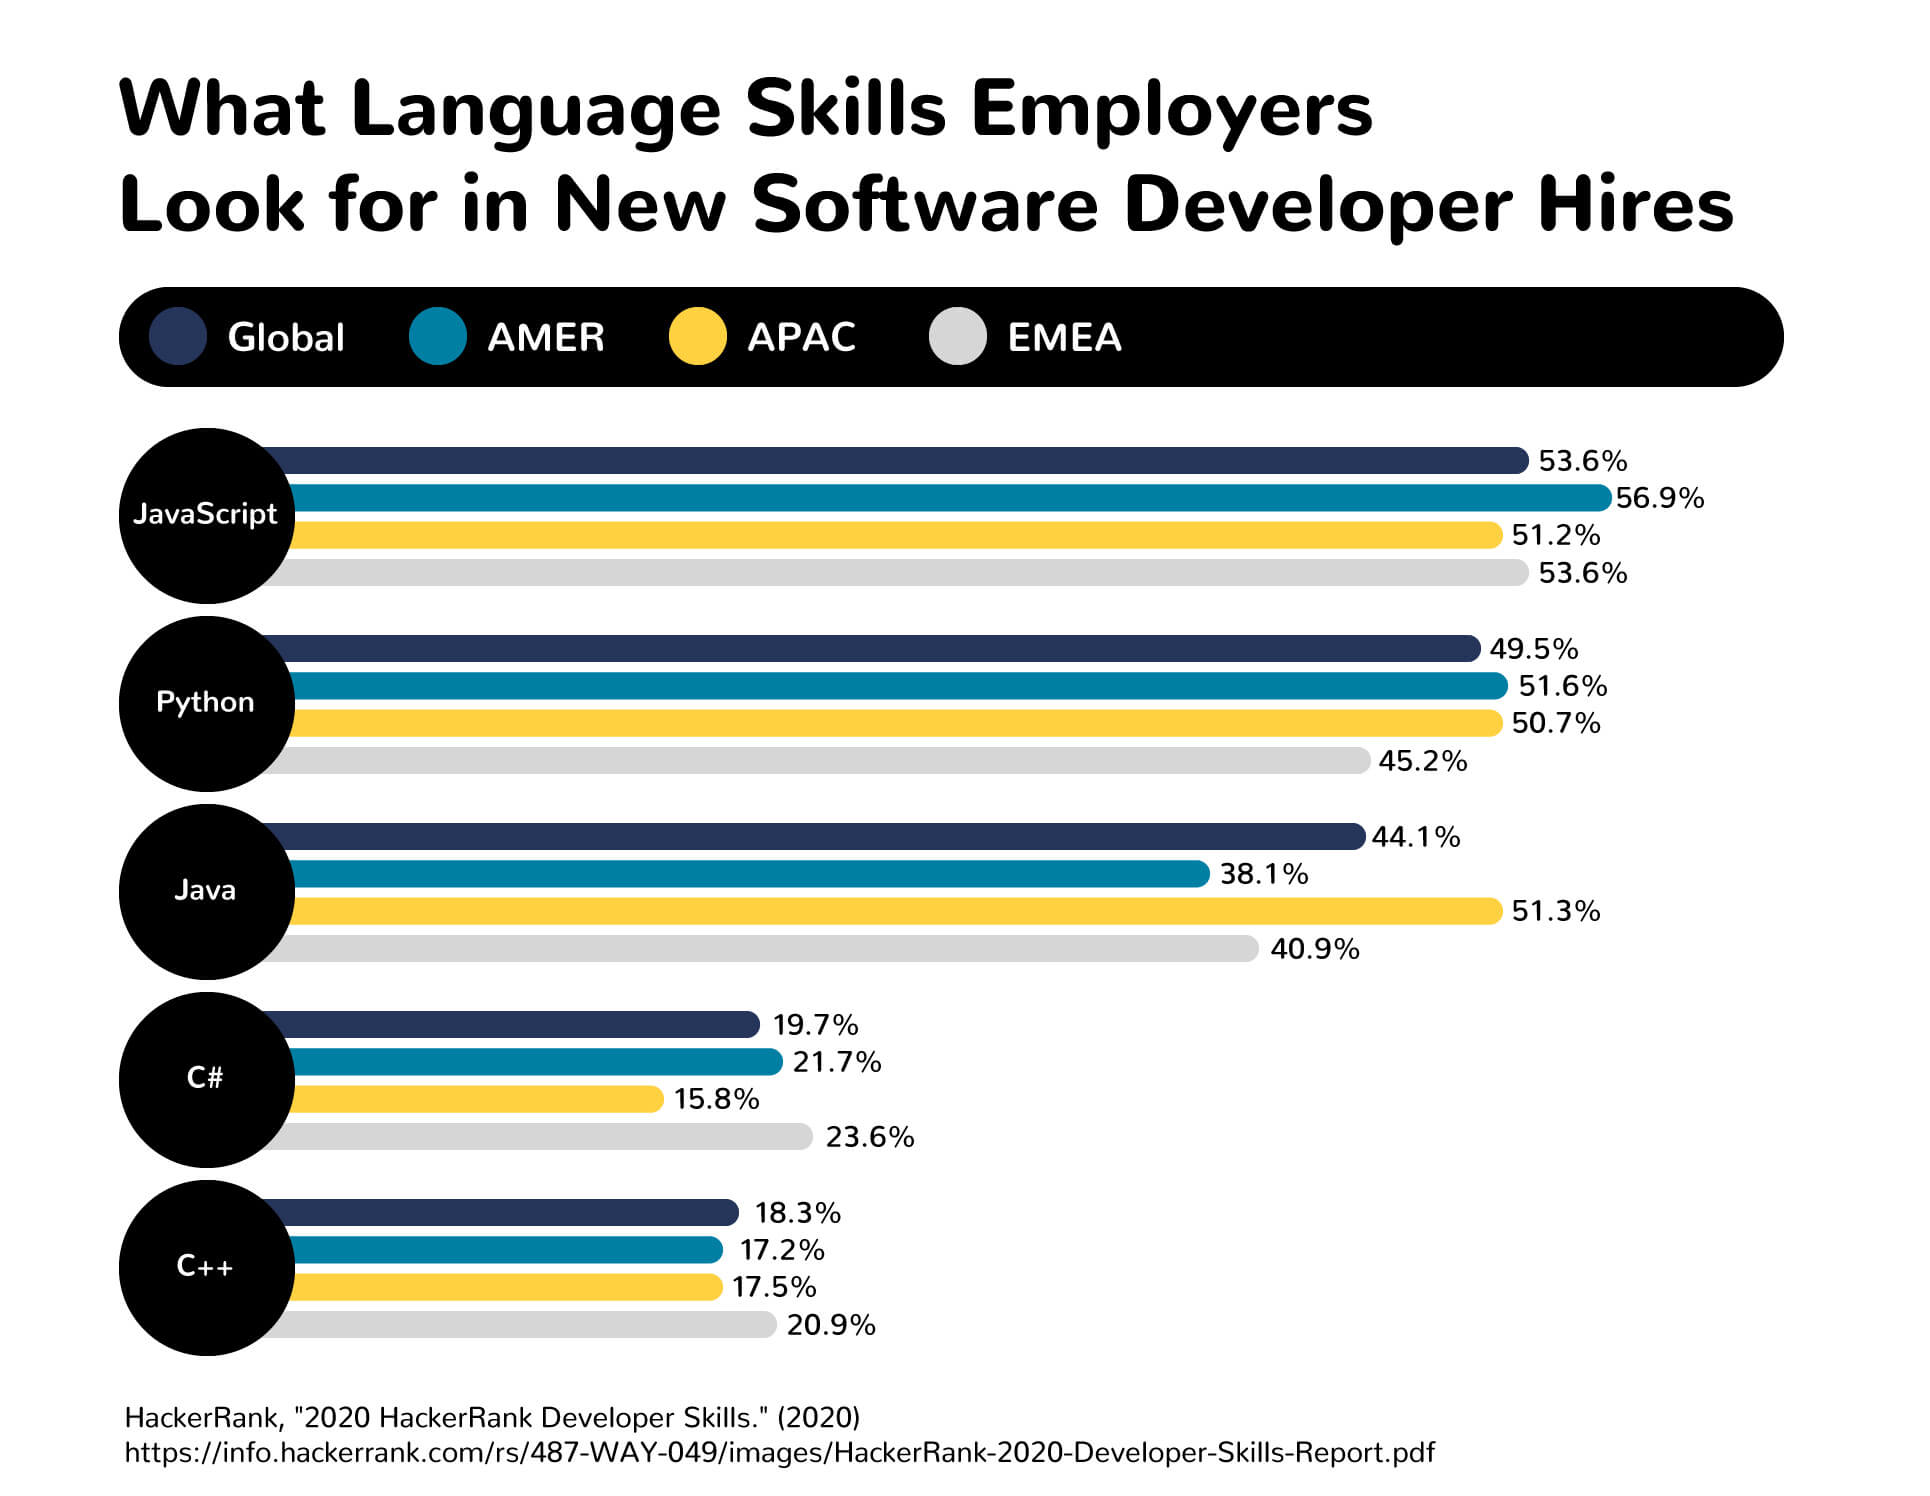 A chart showing what language skills employers look for in software developer hires